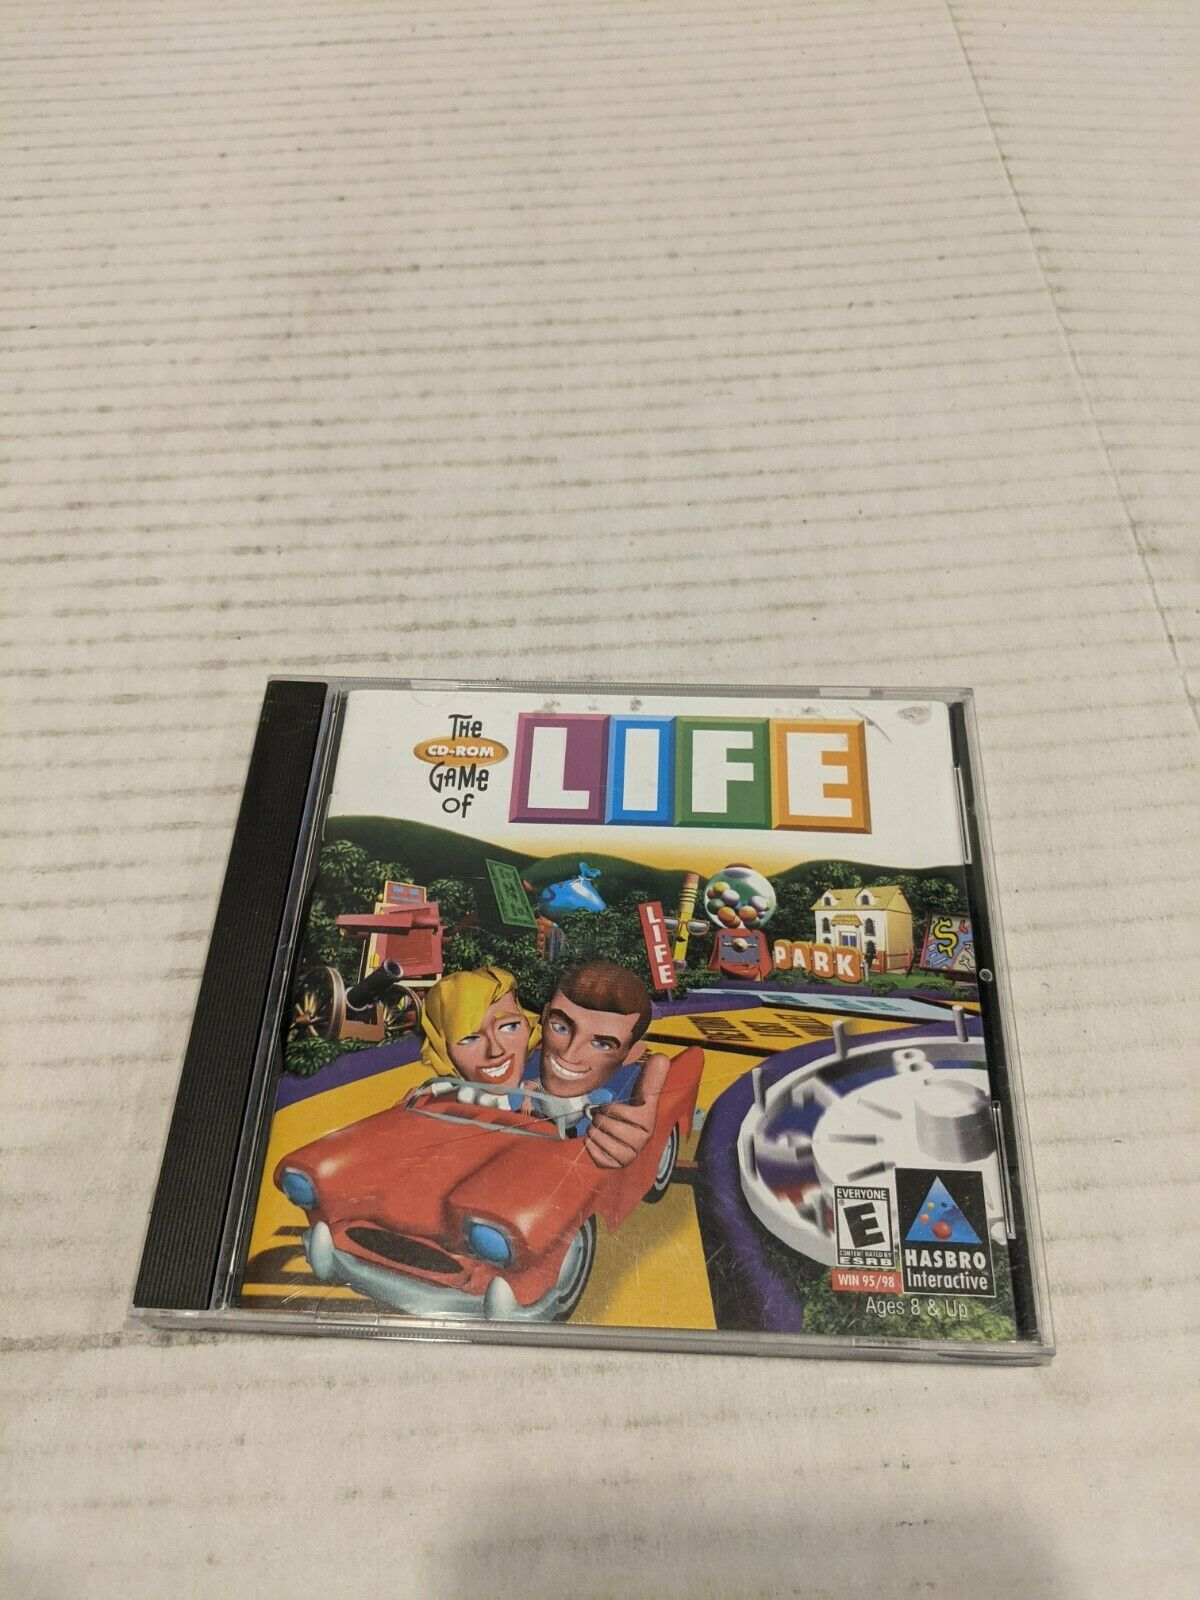 Computer Games - The Game Of Life (1998, PC Computer CD-Rom) Hasbro Interactive Video Game